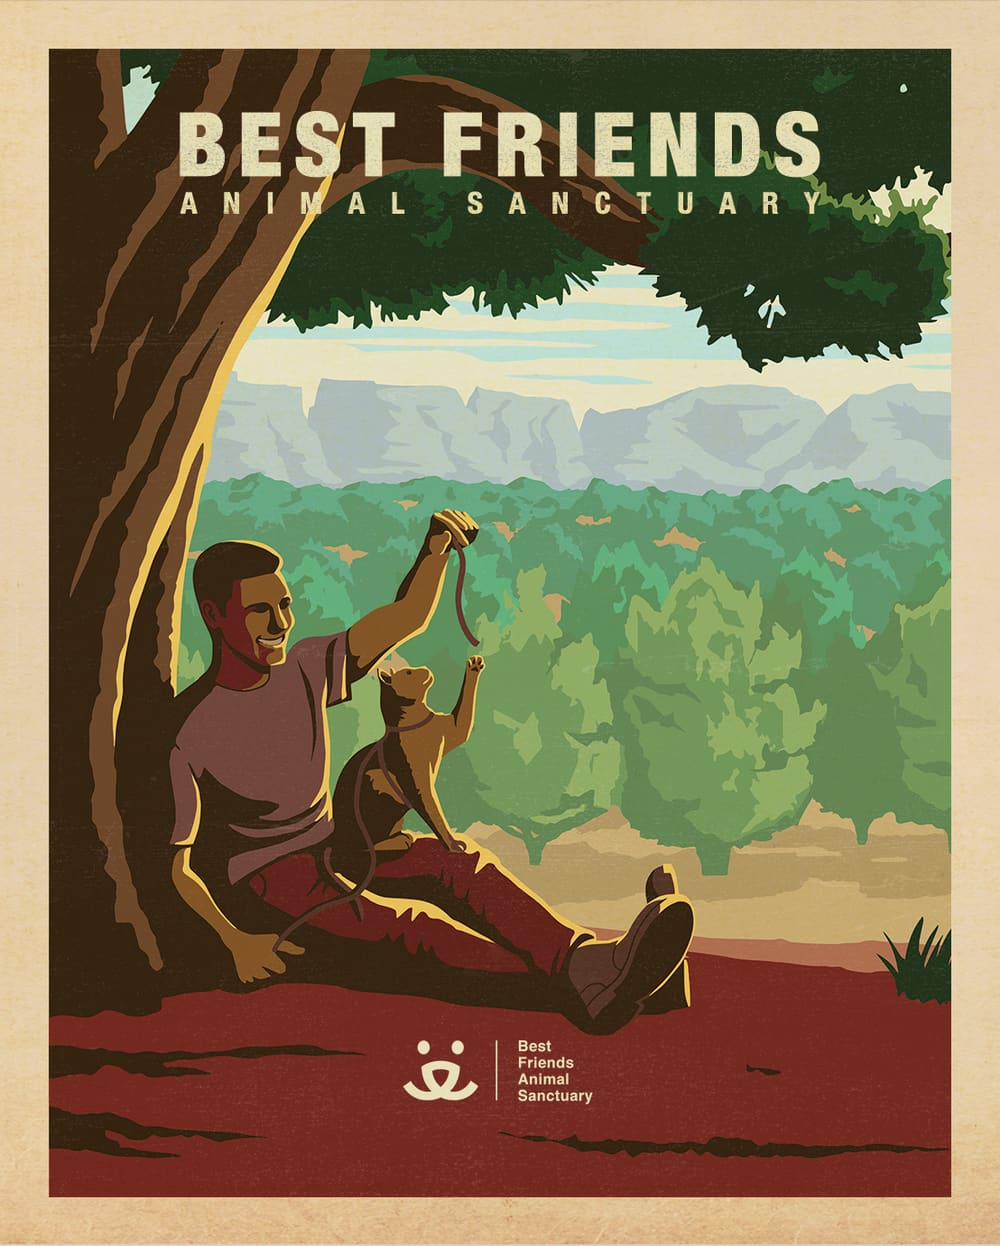 Best Friends Animal Sanctuary - Print Campaign